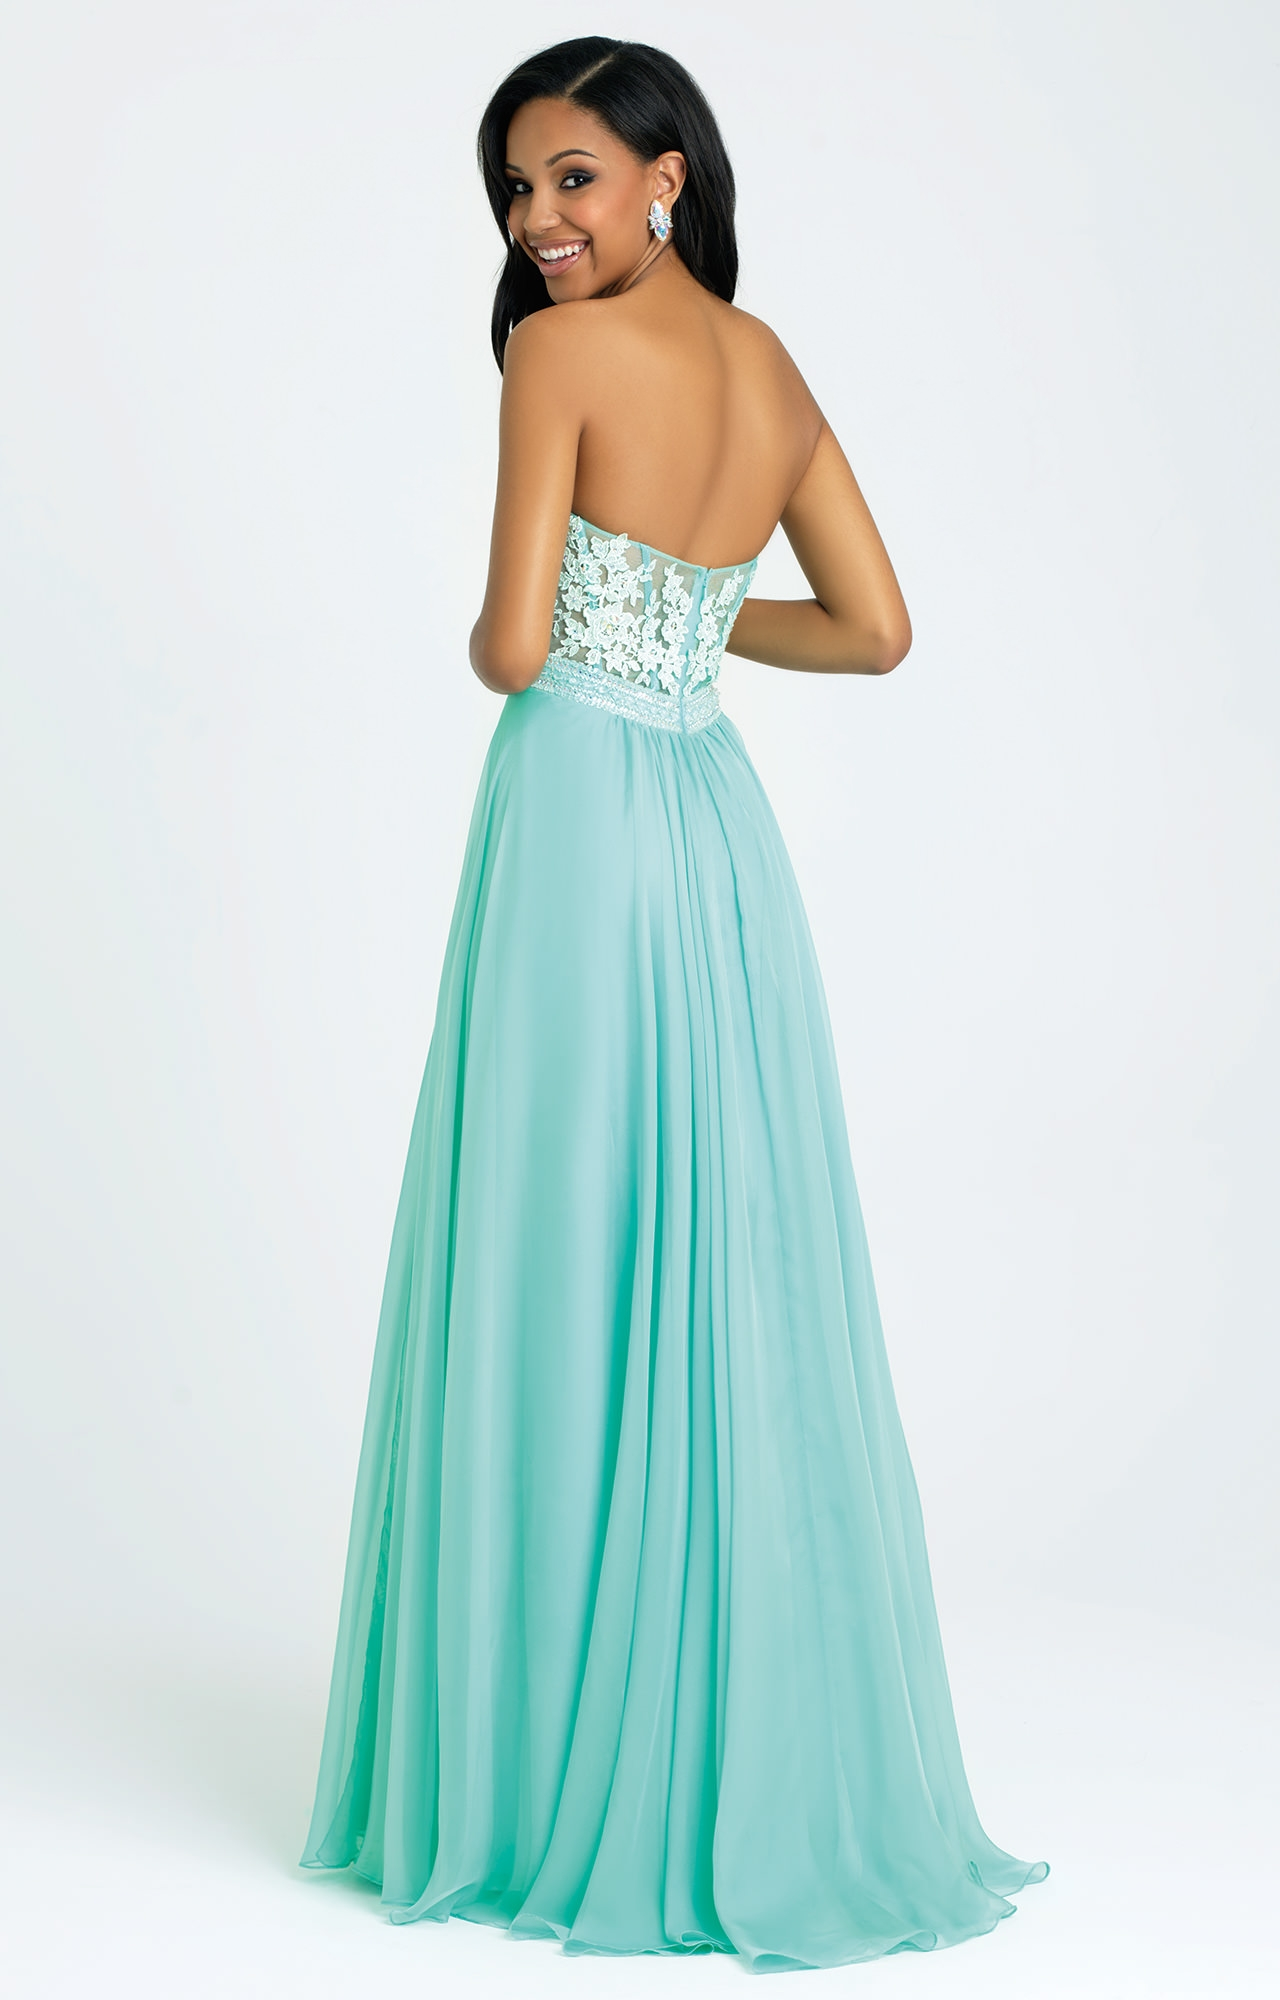 Madison James 16 309 Ella Enchanted Gown Prom Dress